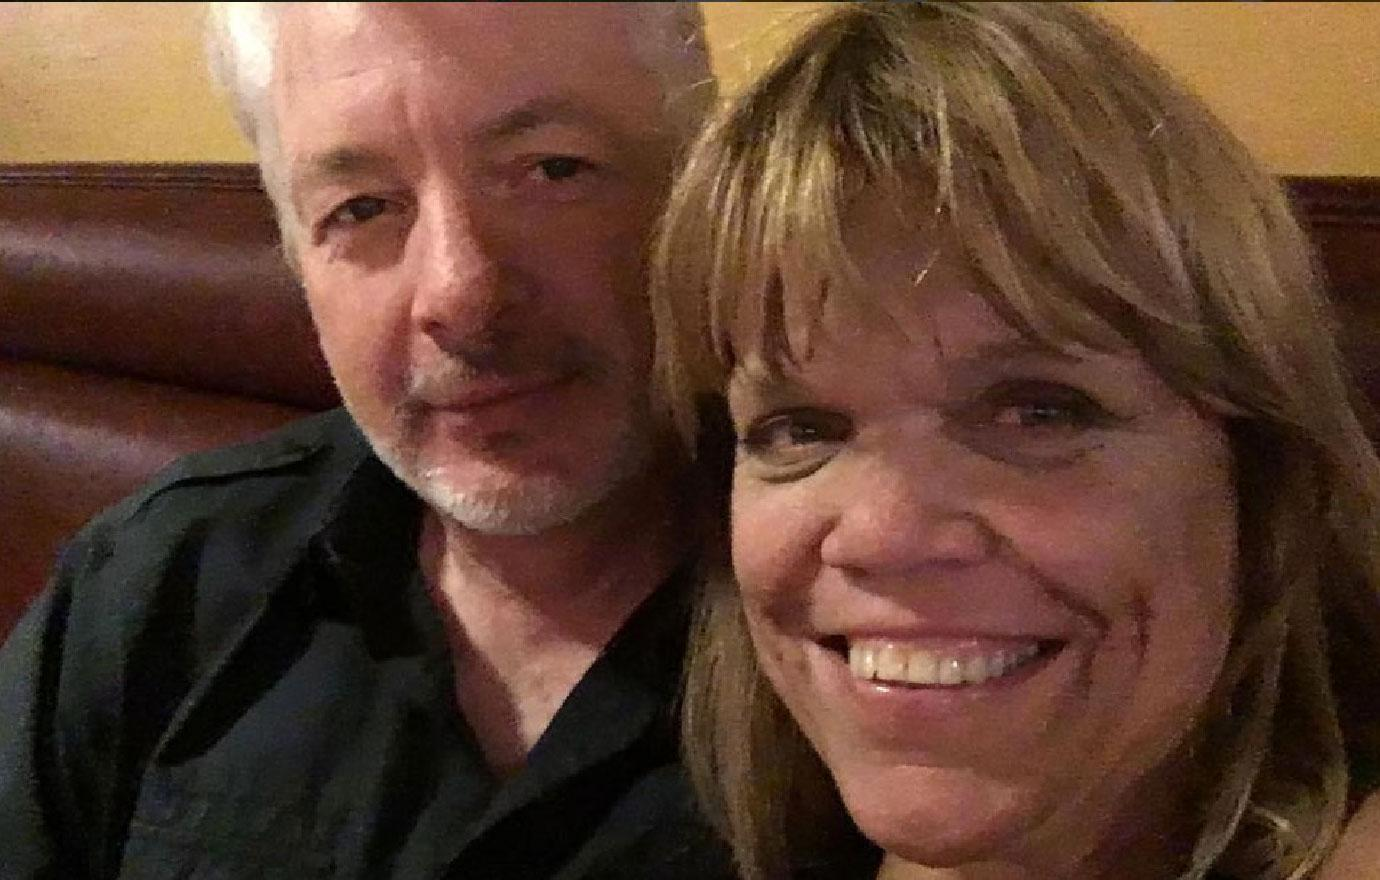 Amy Roloff And Boyfriend Chris Marek Attend His Brother's Wedding